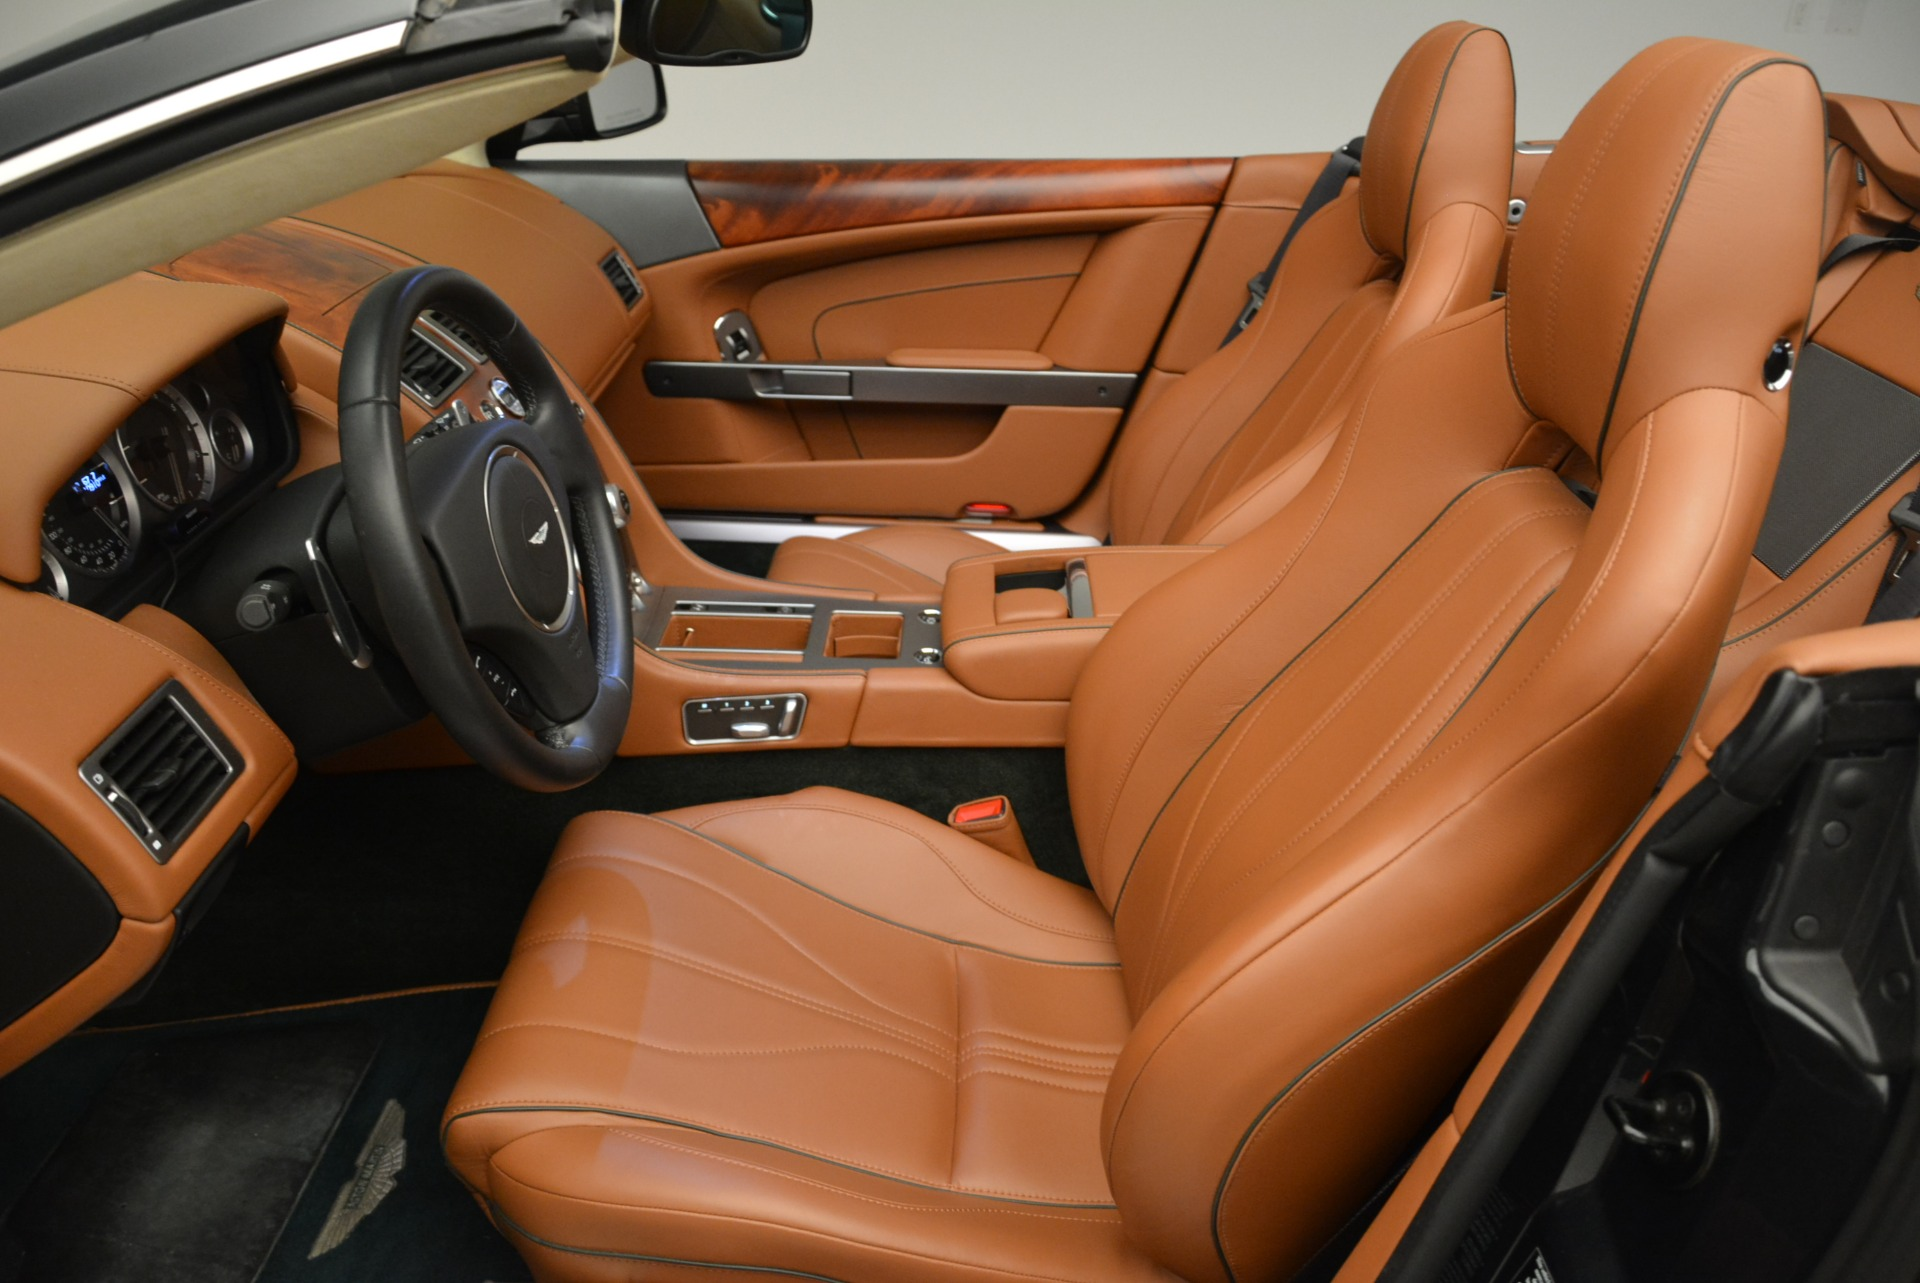 Used 2012 Aston Martin Virage Volante For Sale In Westport, CT 2508_p19